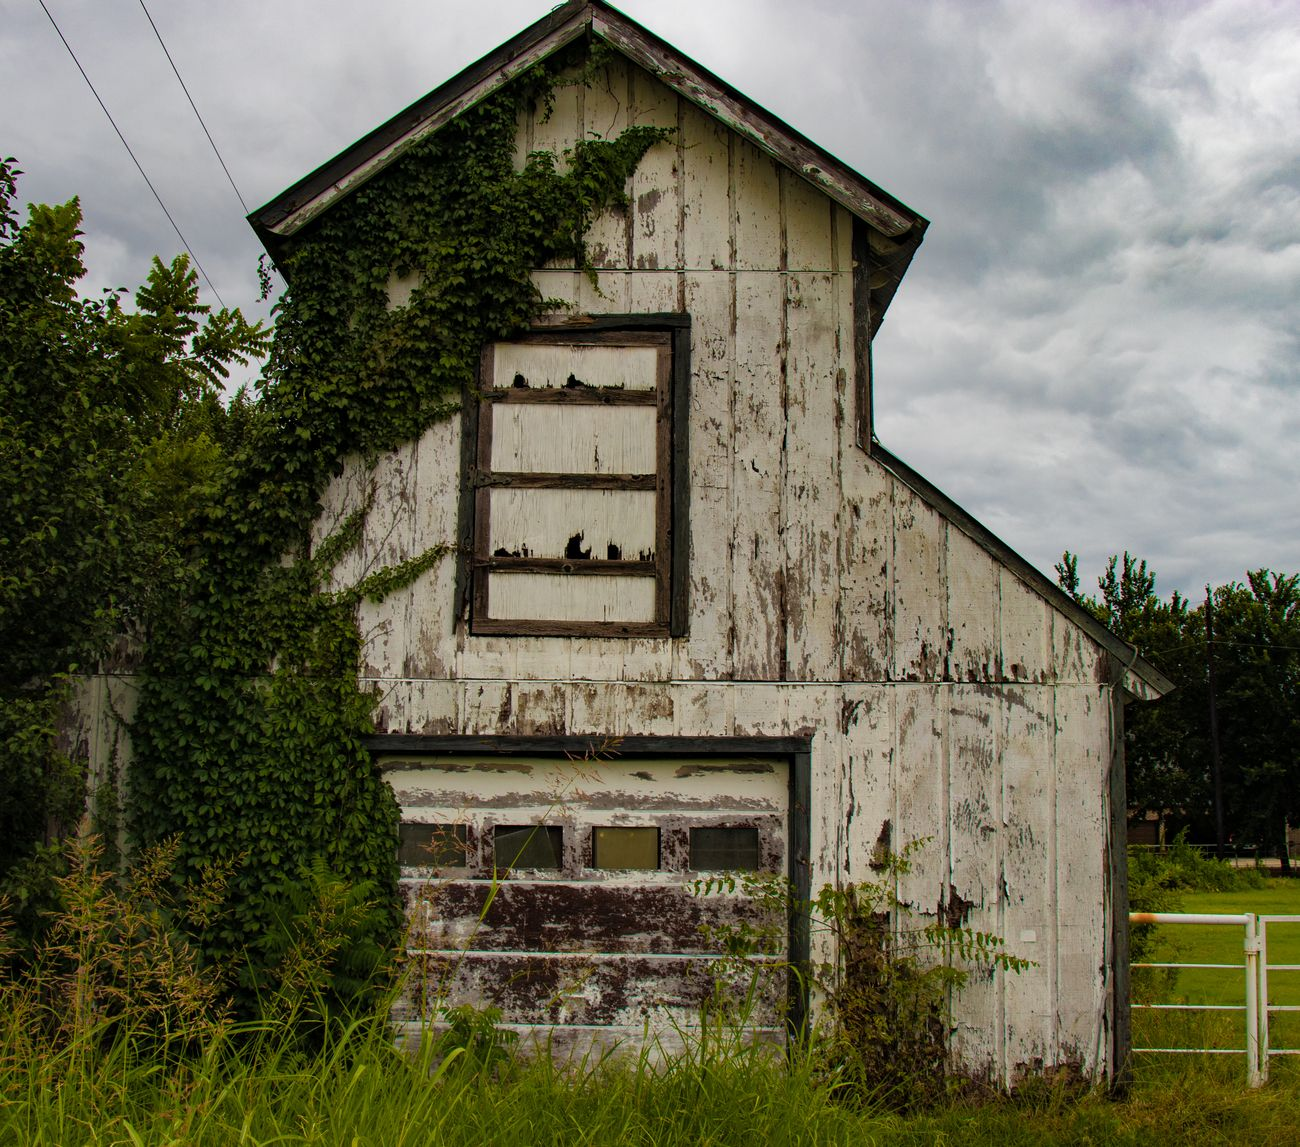 An old building I found, needs a good coat of paint